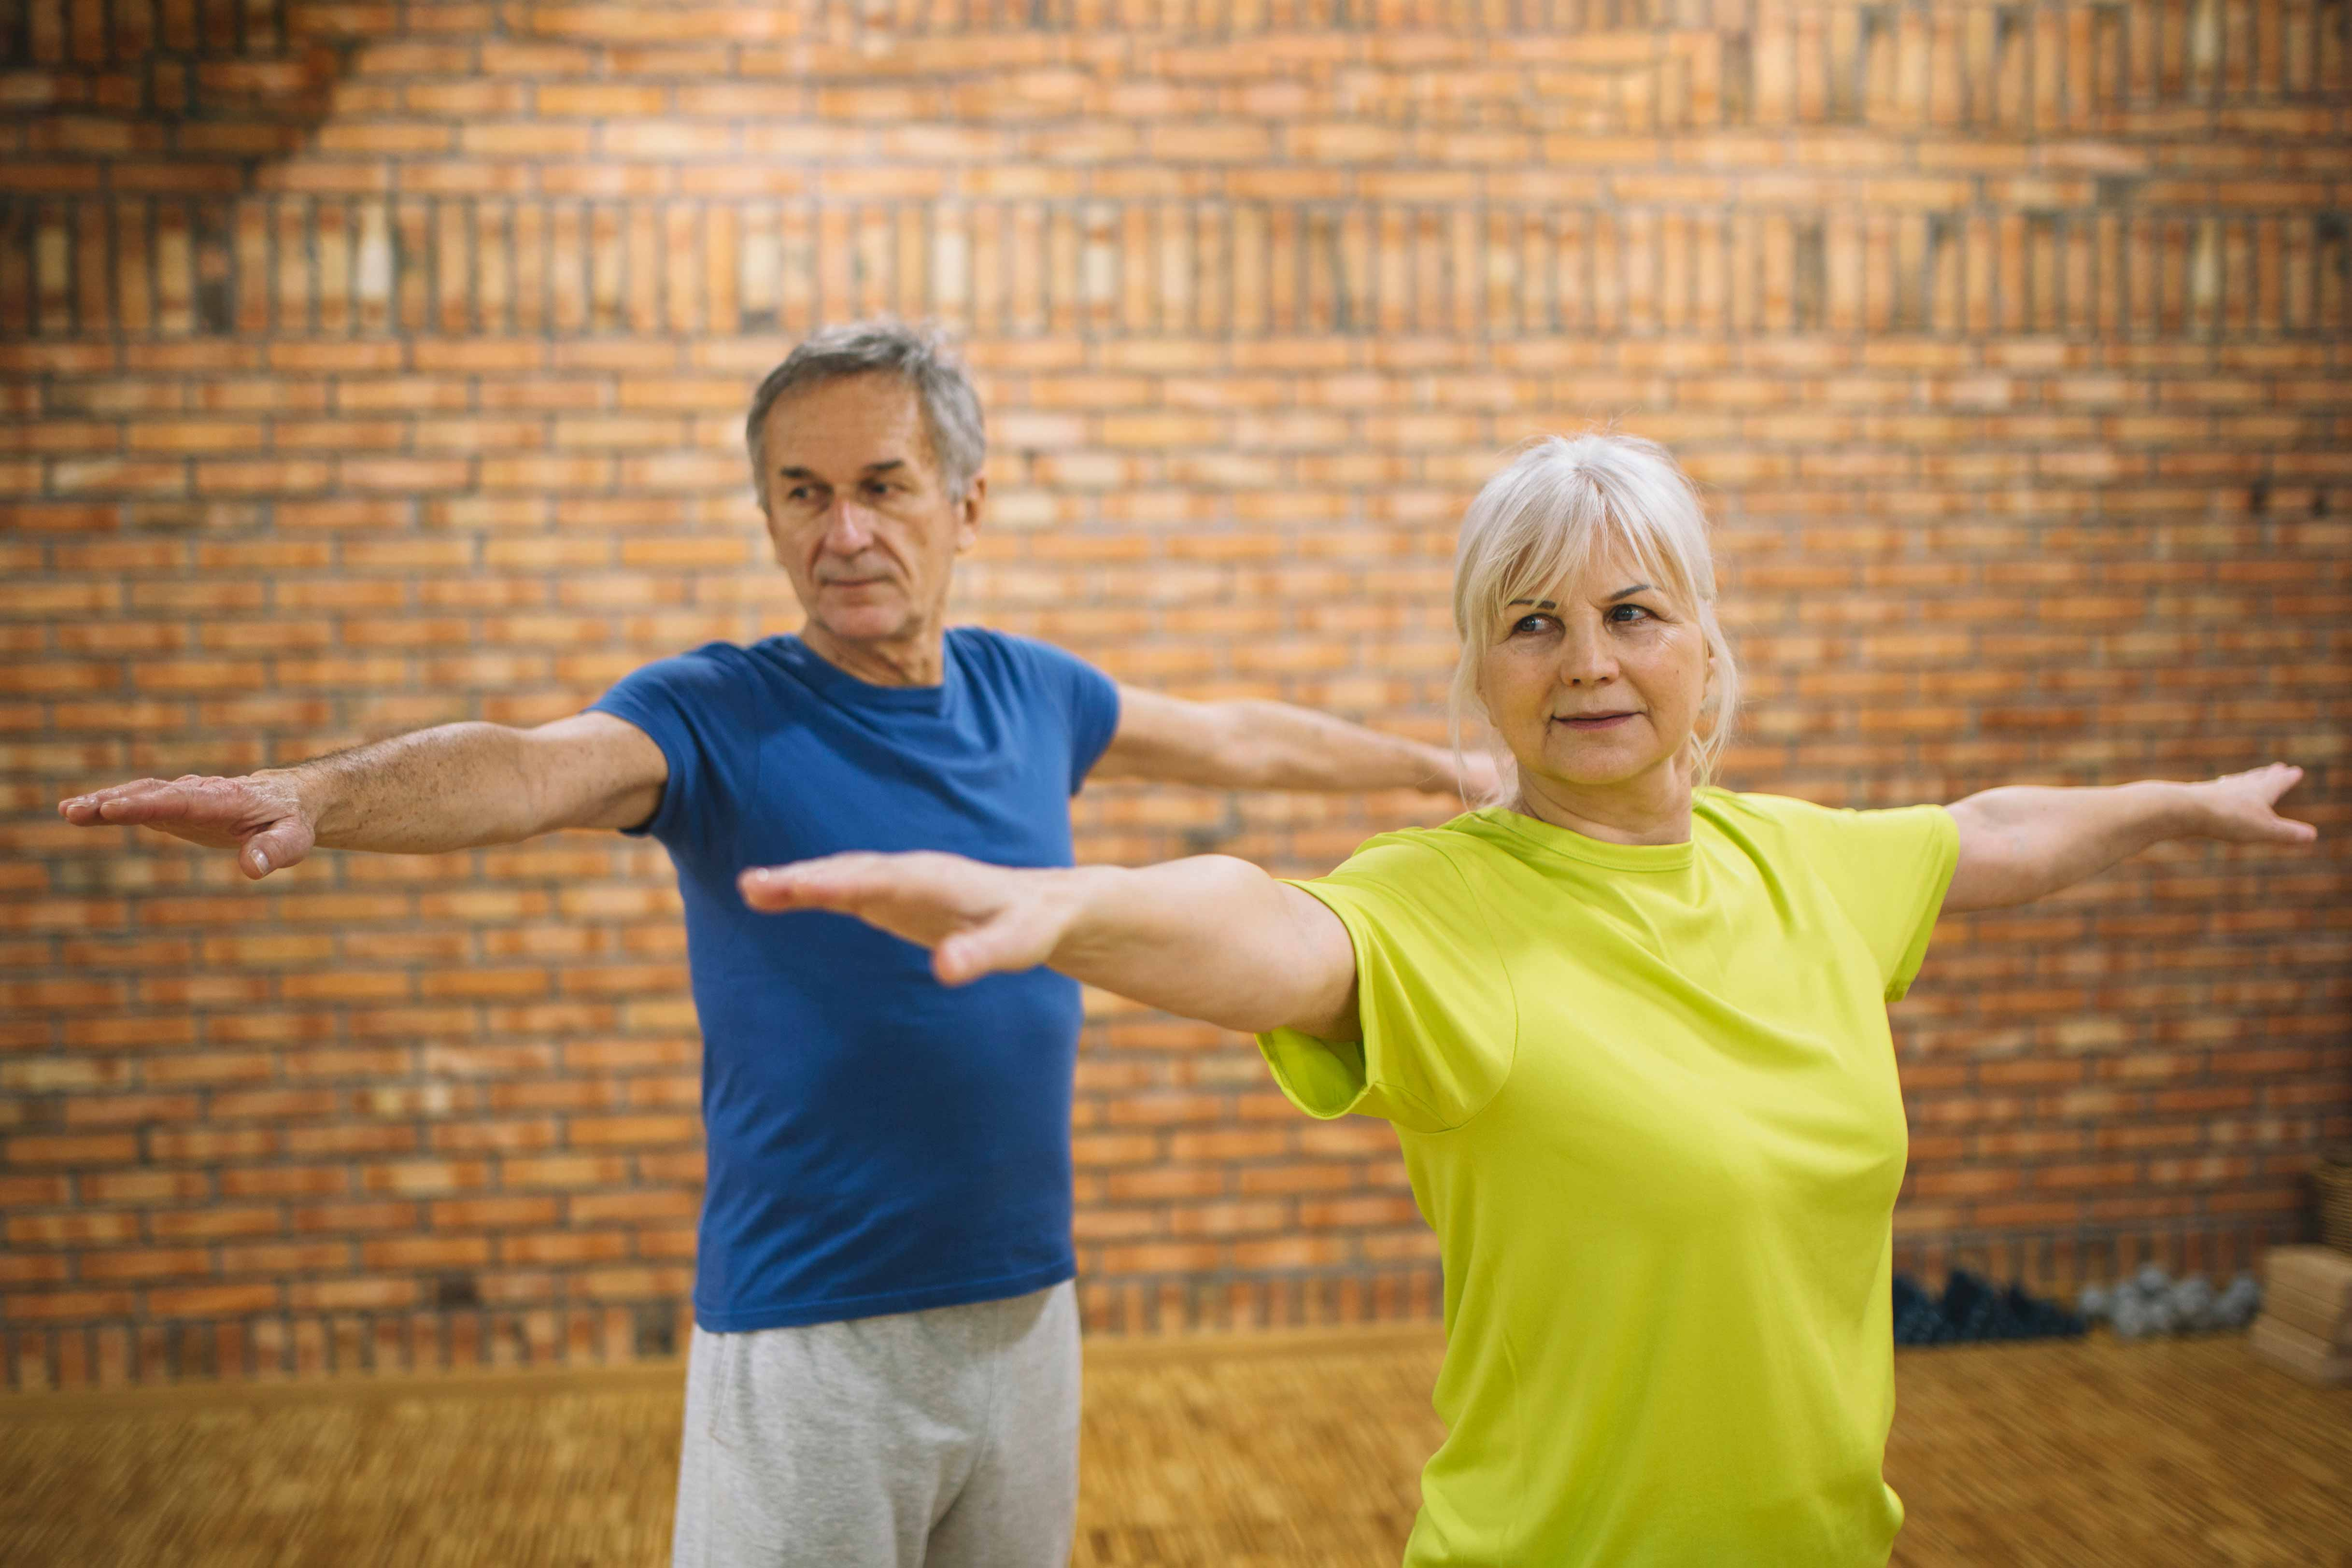 Balance exercises for people with Parkinson's